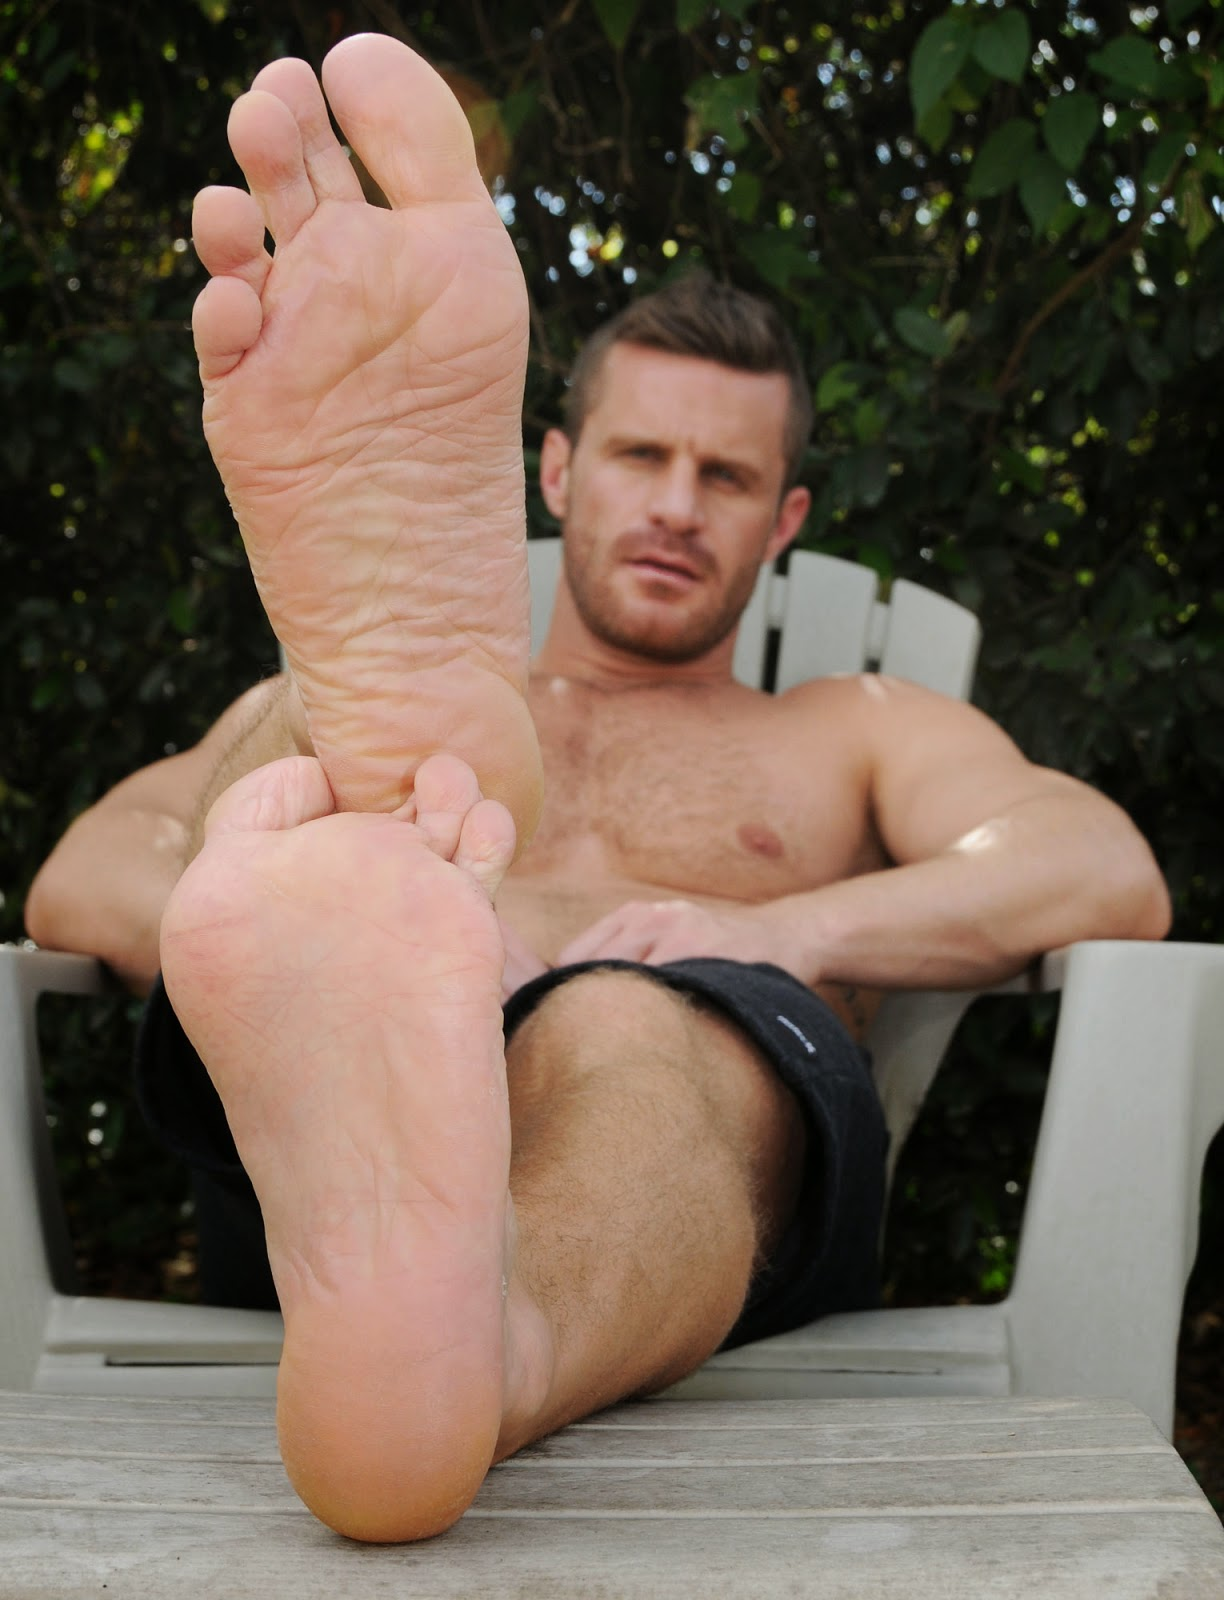 Male Foot Fetish Sites